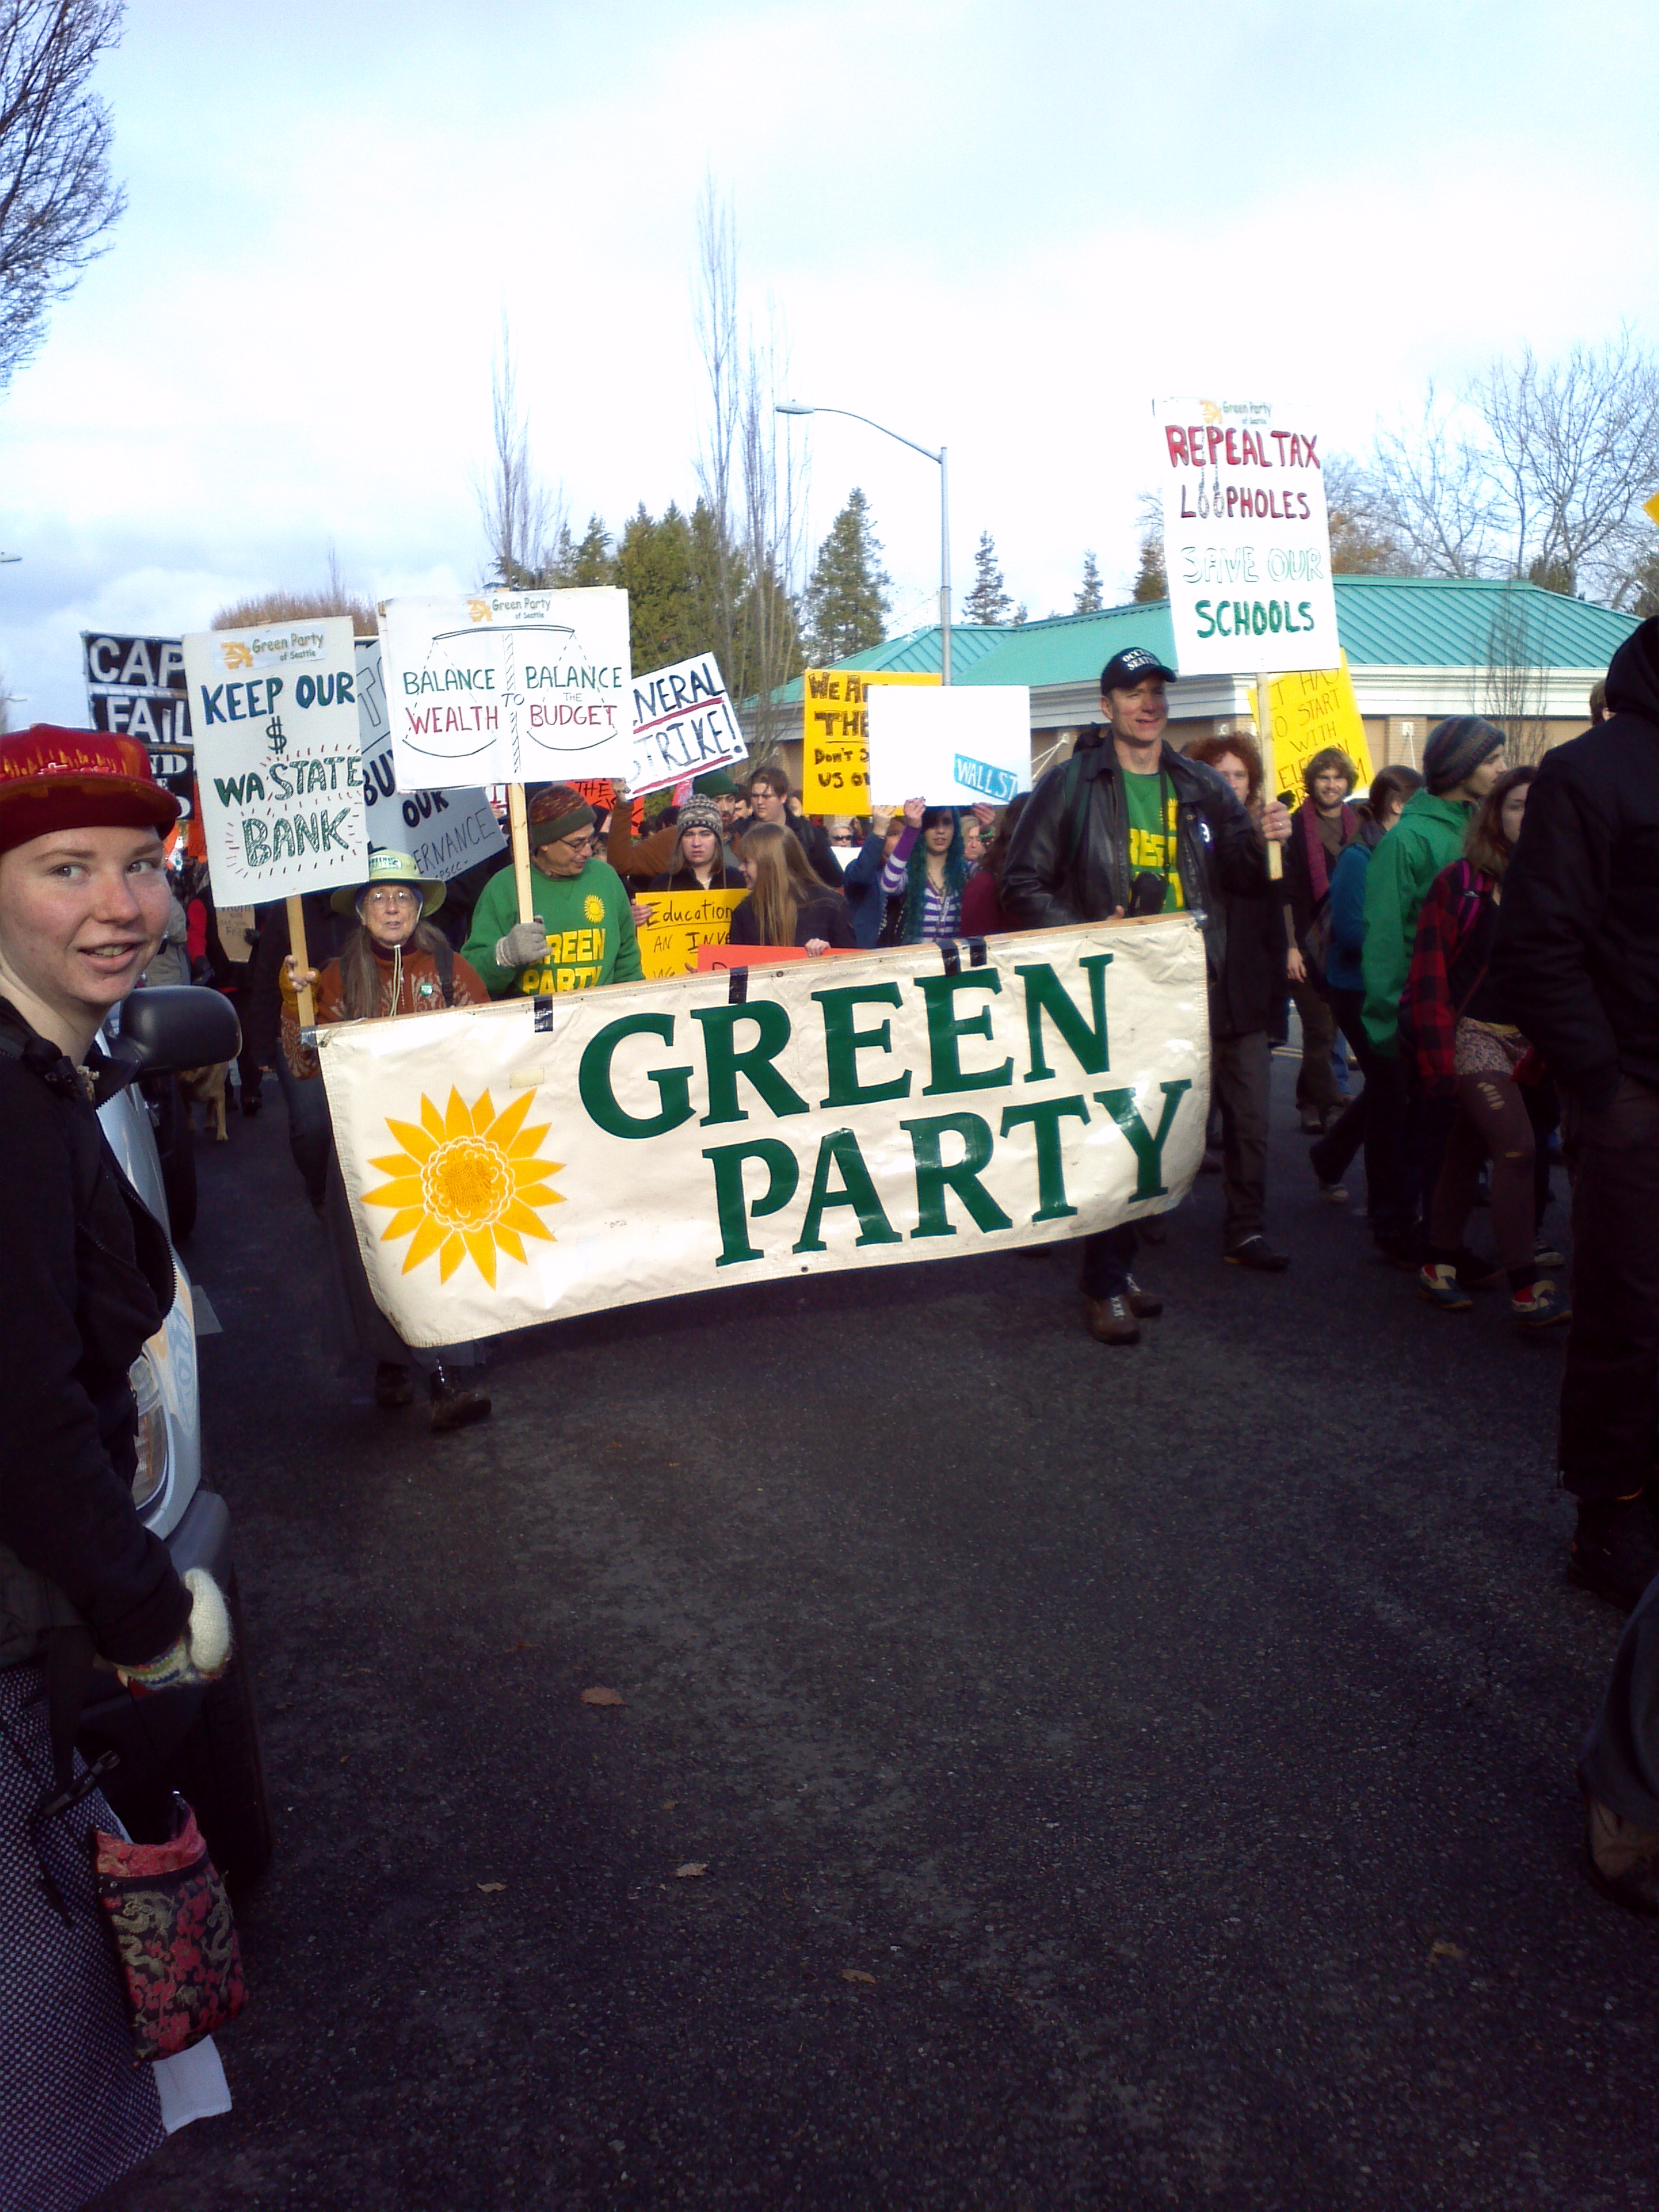 Green Party members march thru Olympia, Washington to Occupy the State Capital., Monday 28 November 2011.